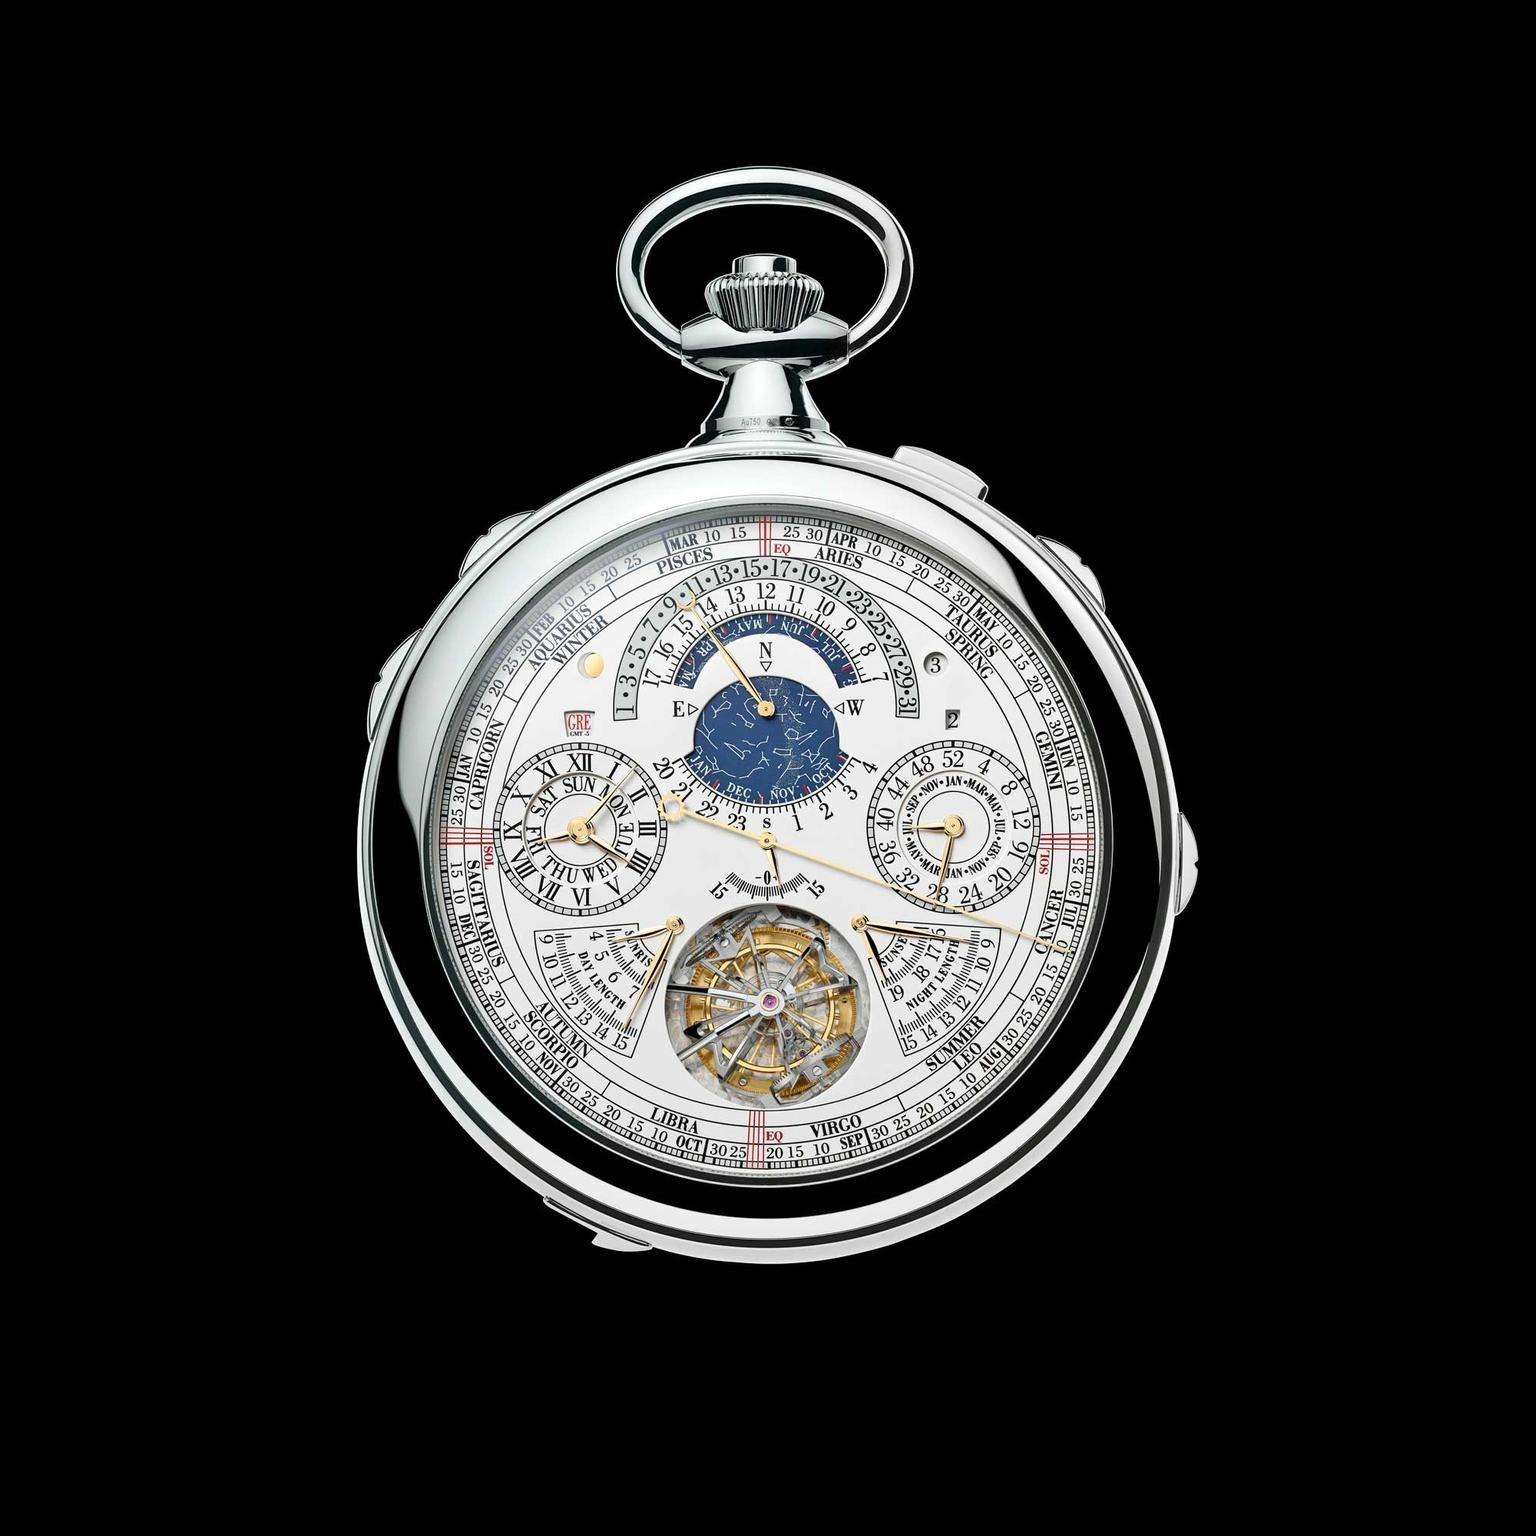 Vacheron Constantin Reference 57260 pocket watch second dial